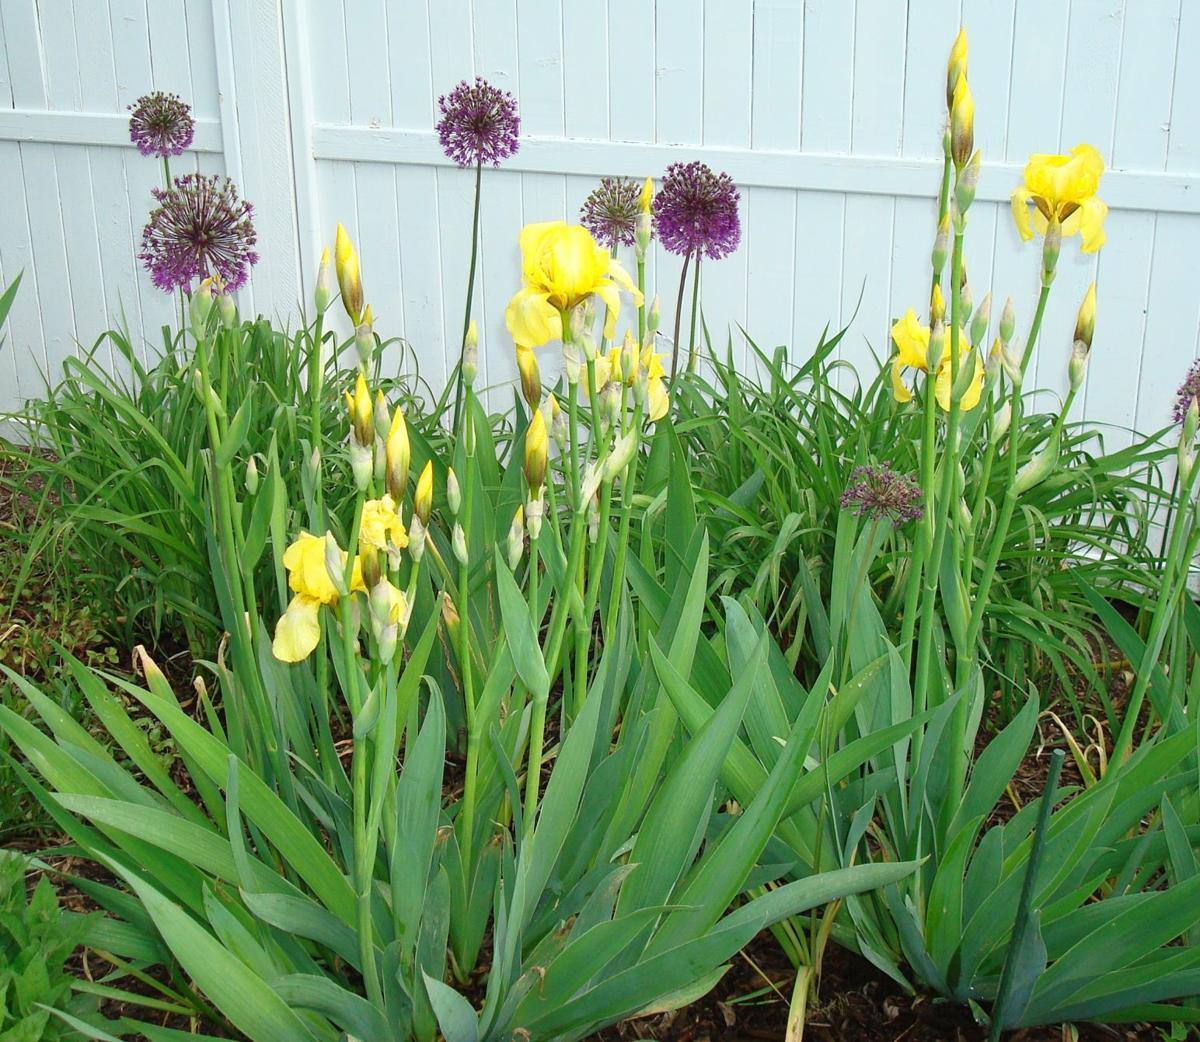 Year Round Gardening: May Garden Calendar Average last frost date in town: May 10 to May 15